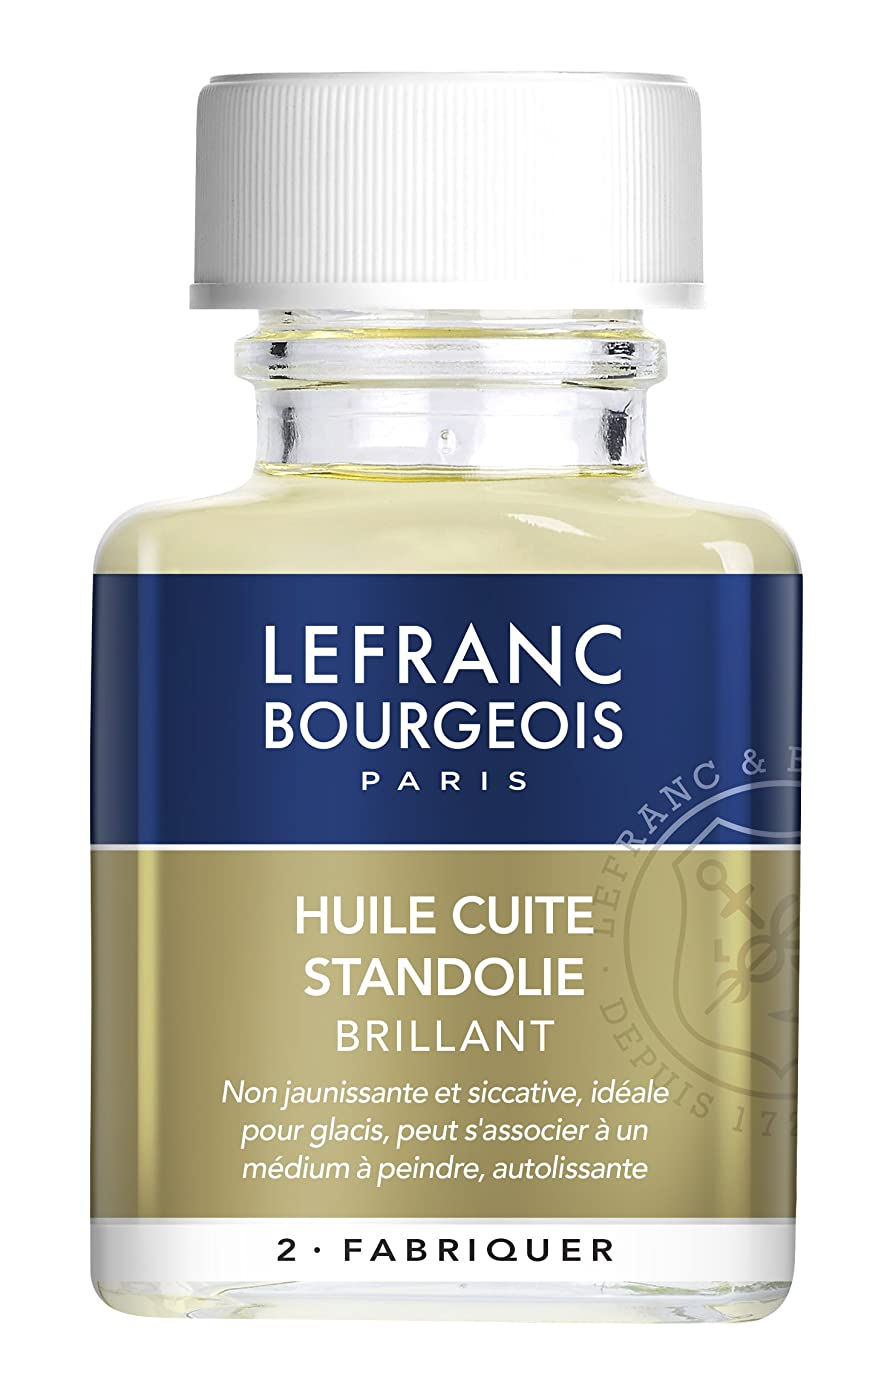 Lefranc Bourgeois Transparent 300201?Solvents Oils for Oil Painting Oil Paint Additive for, 4.1?x 6.0?x 9.9?cm